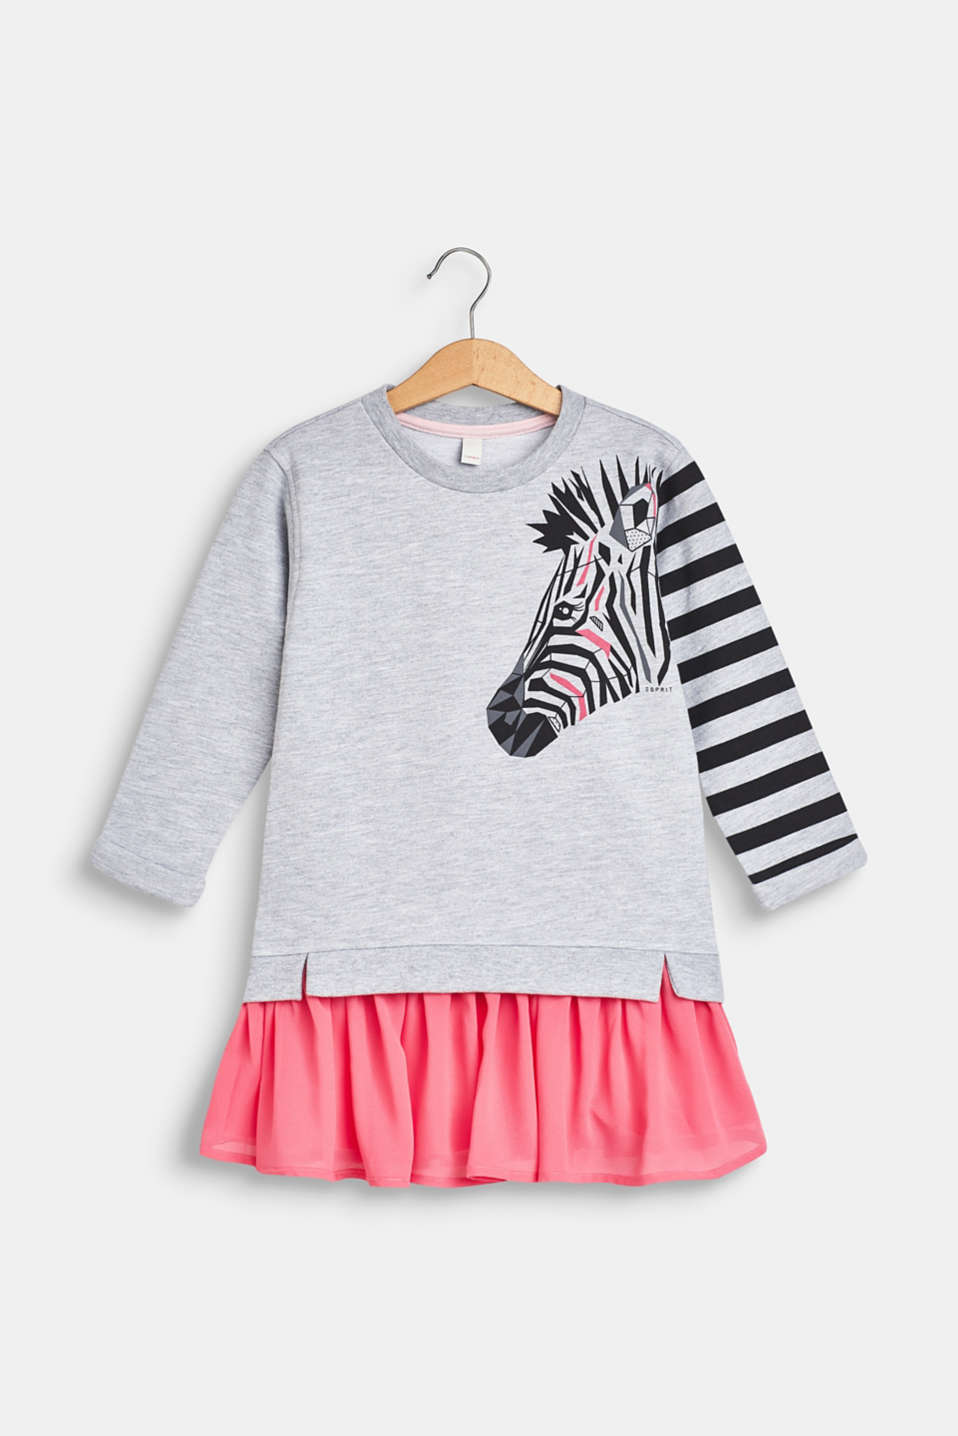 Esprit - Sweatshirt dress with a zebra print and chiffon skirt